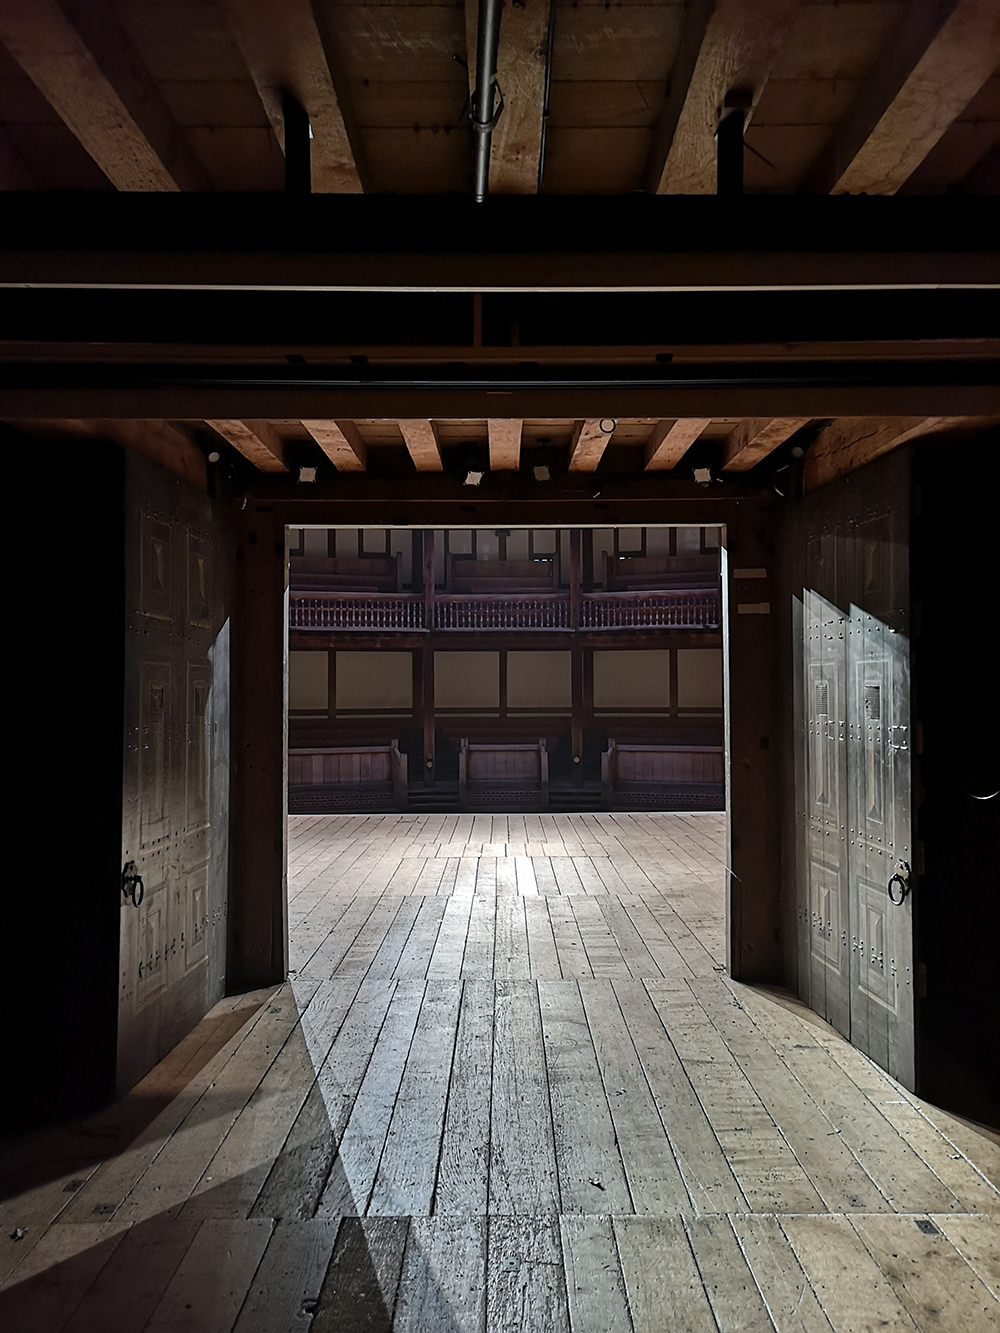 A view from backstage of the Globe Theatre, looking out through the open double oak doors on to the stage and the galleries beyond.